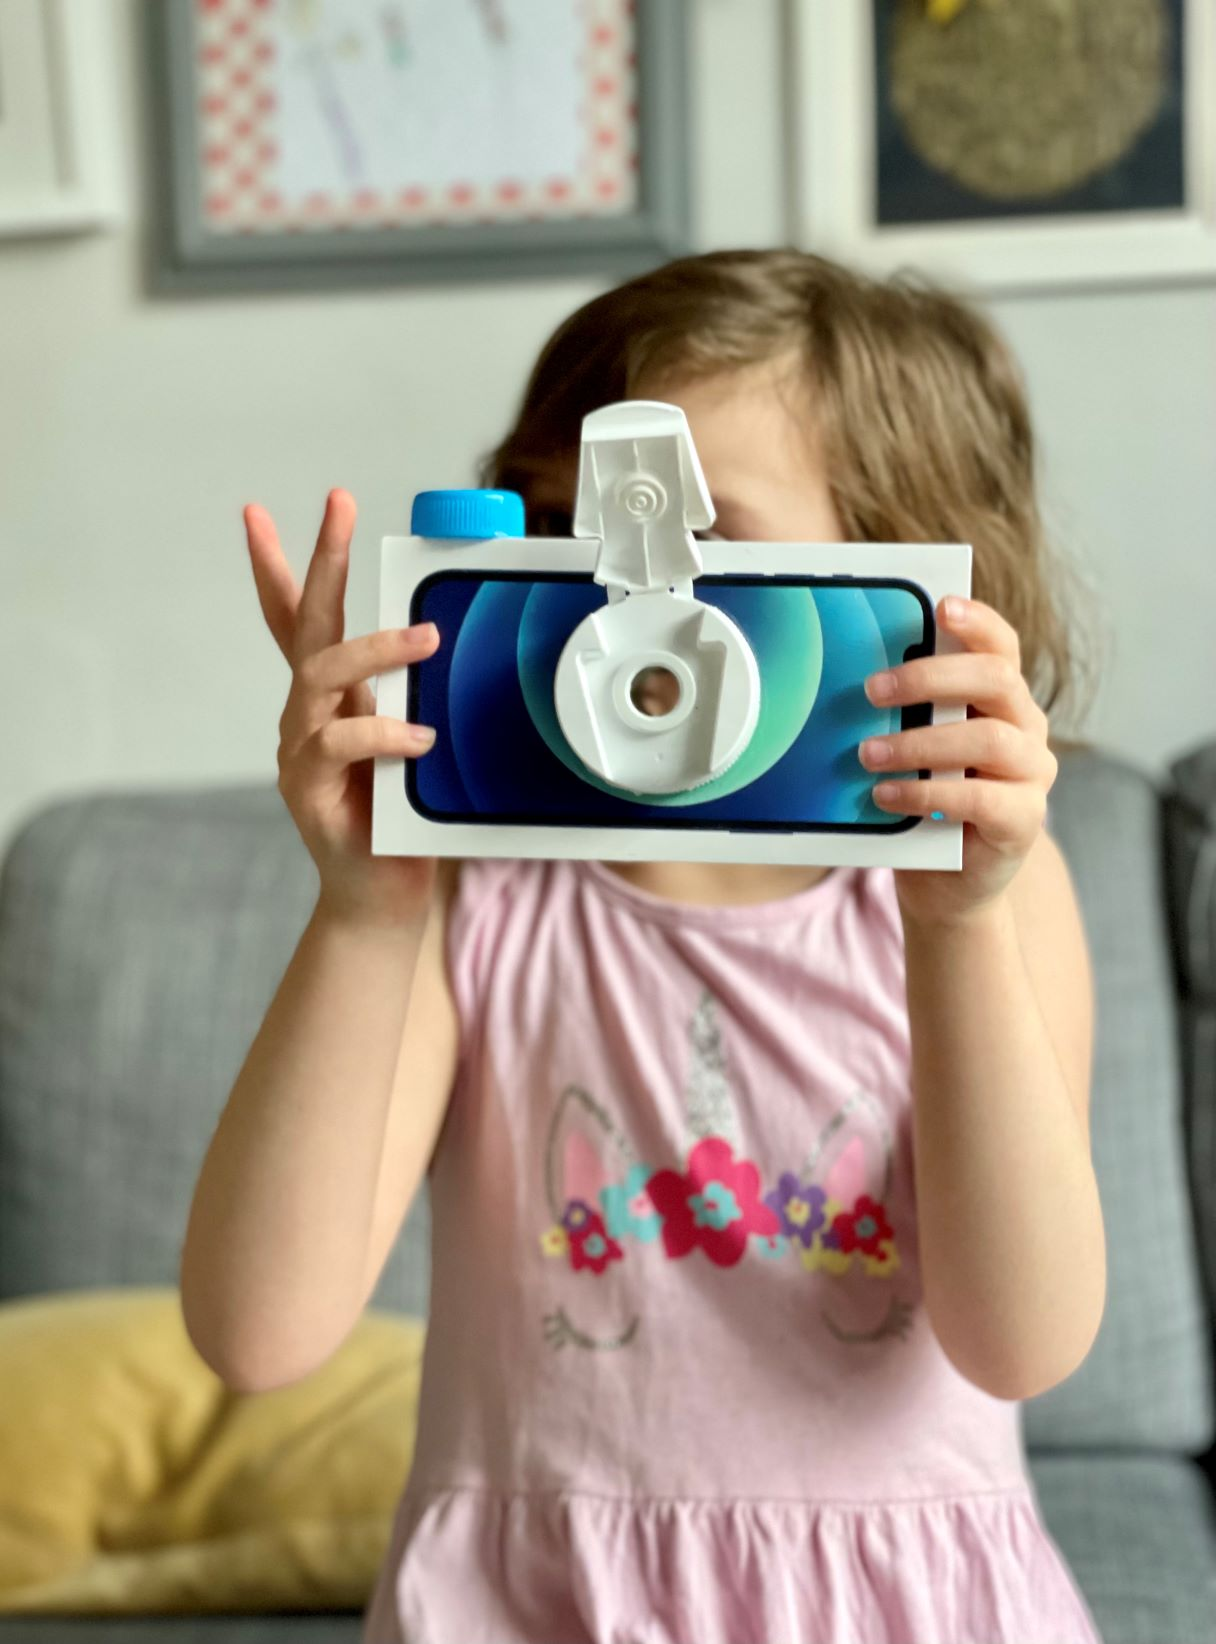 How to make a cardboard box camera from a phone box